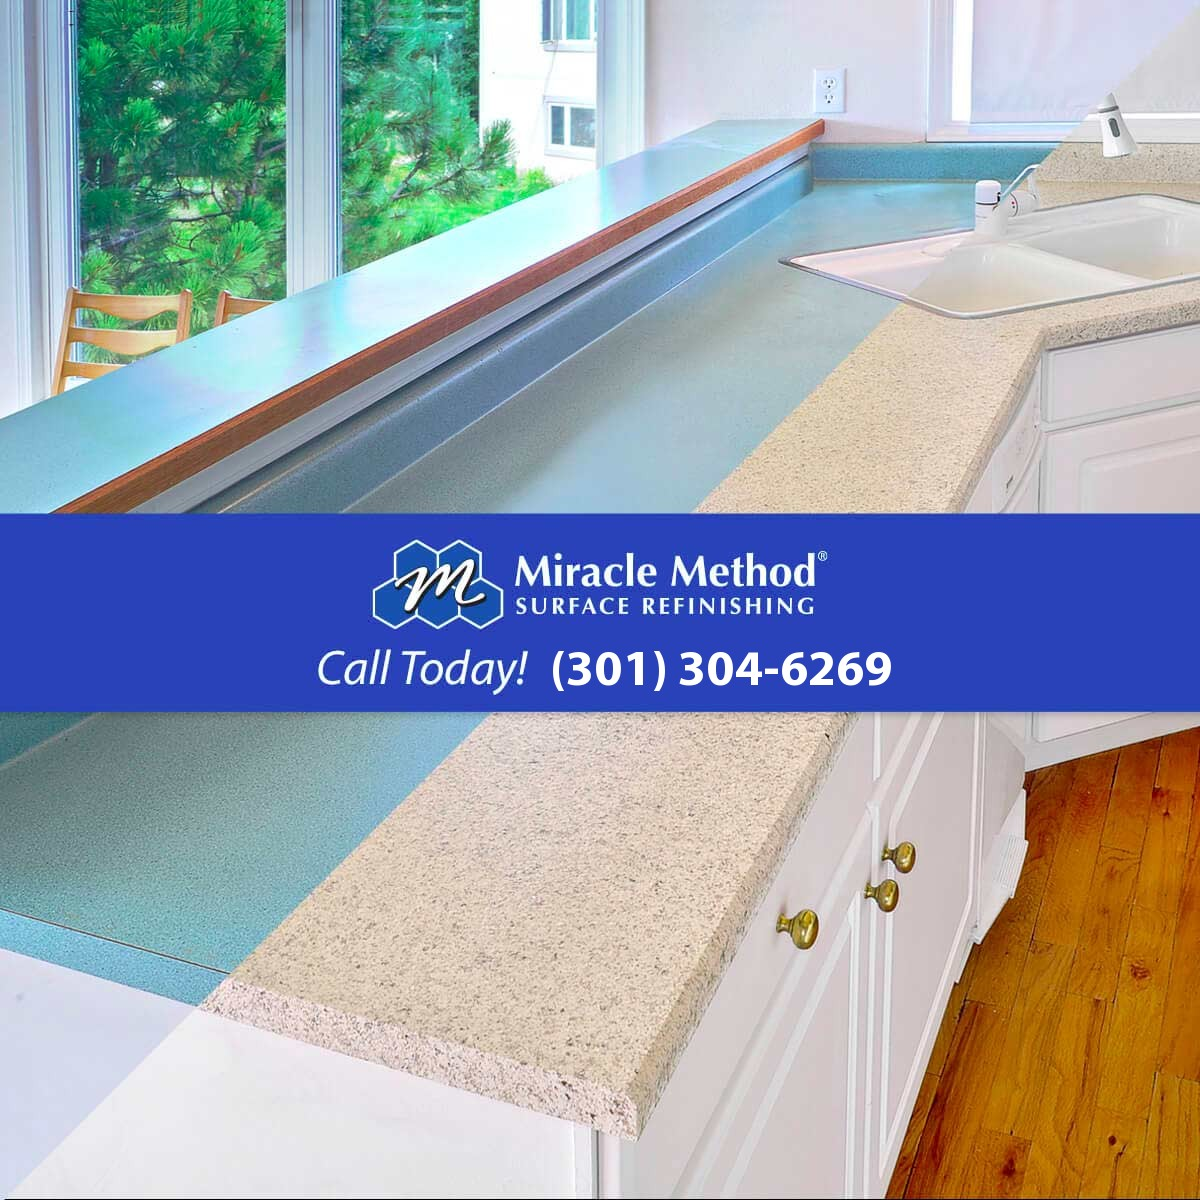 Bathtub Refinishing - Tub Resurfacing - Tub Reglazing